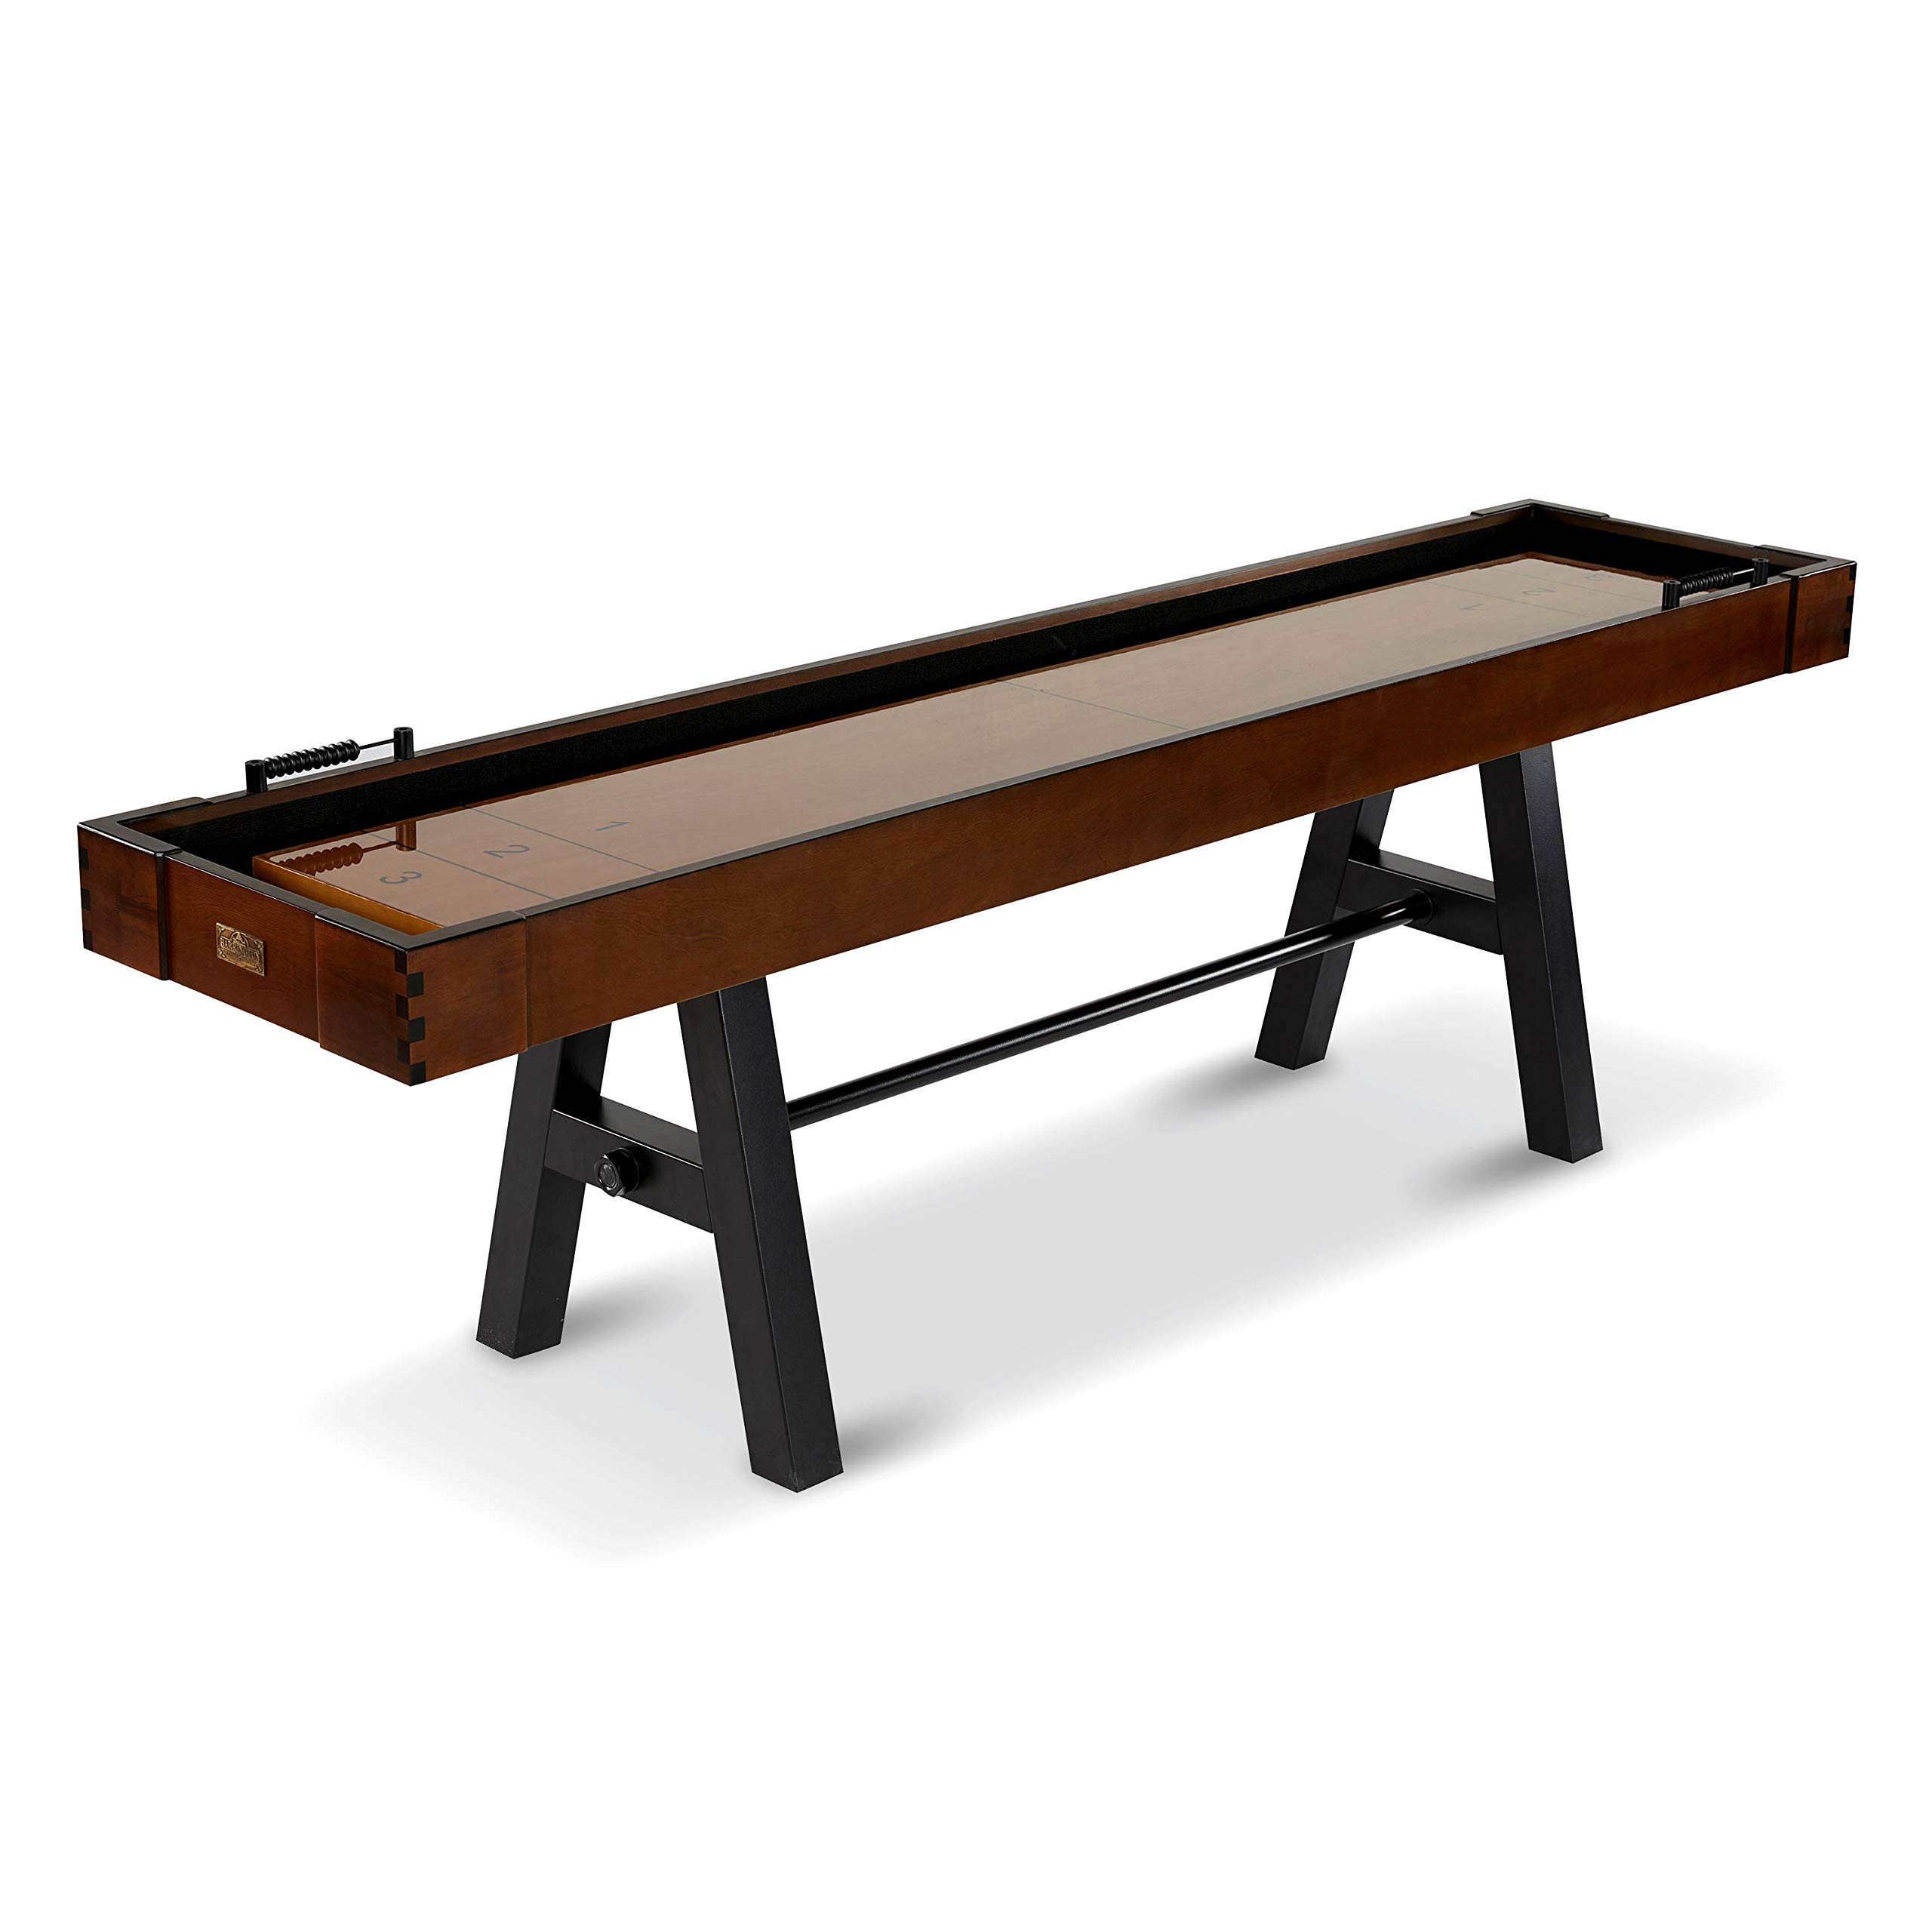 Barrington 9 ft. Allendale Collection Shuffleboard Table by Barrington Billiards